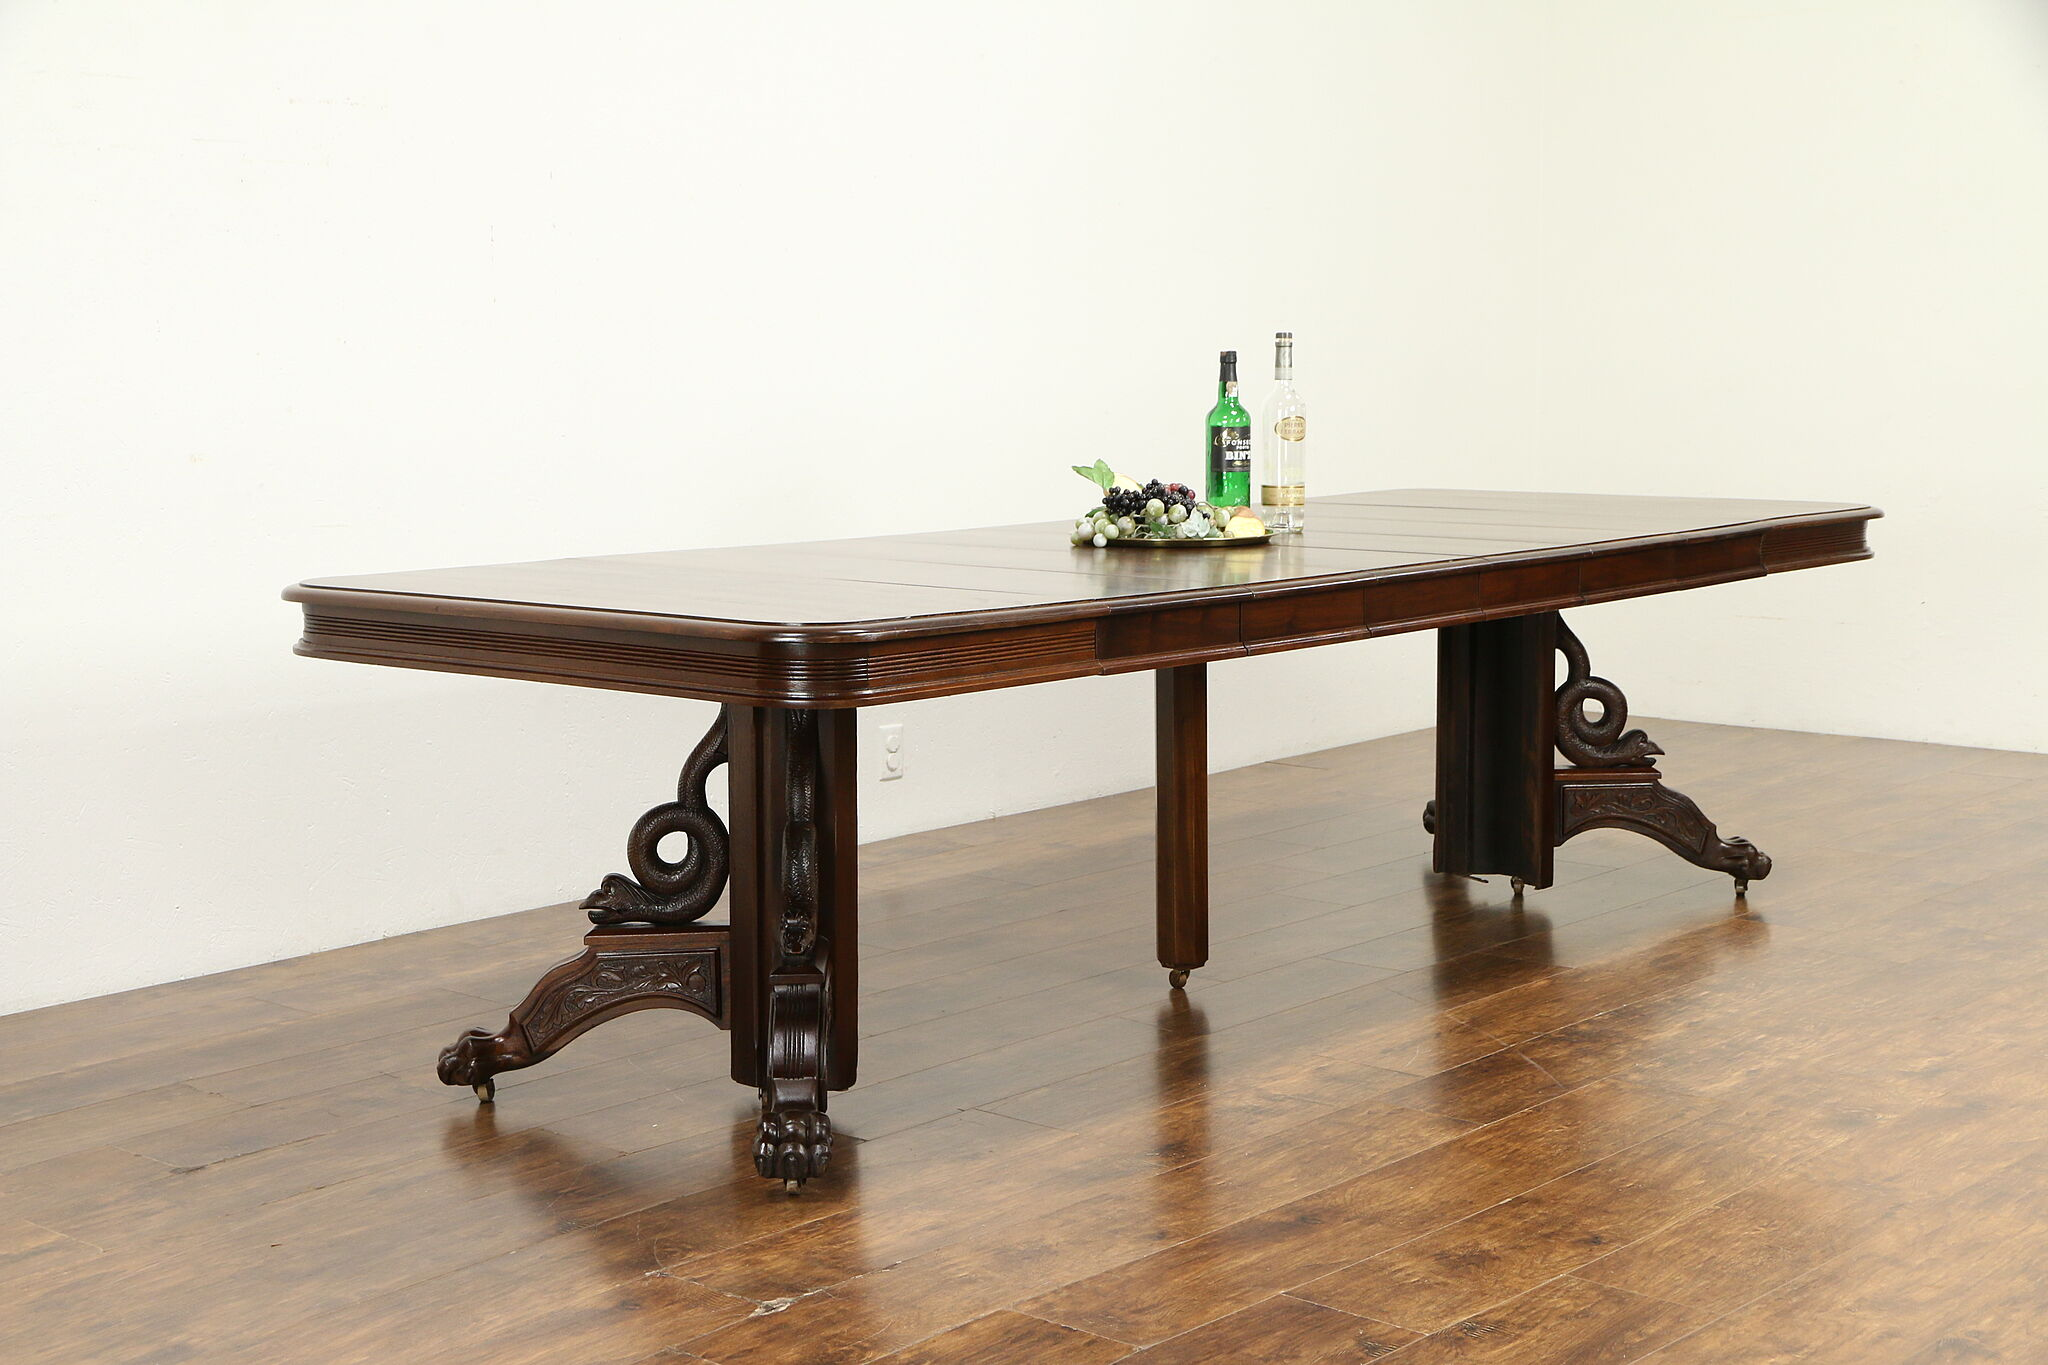 Victorian Antique Carved Walnut Dining Table 6 Leaves Extends 9 1 2 31600